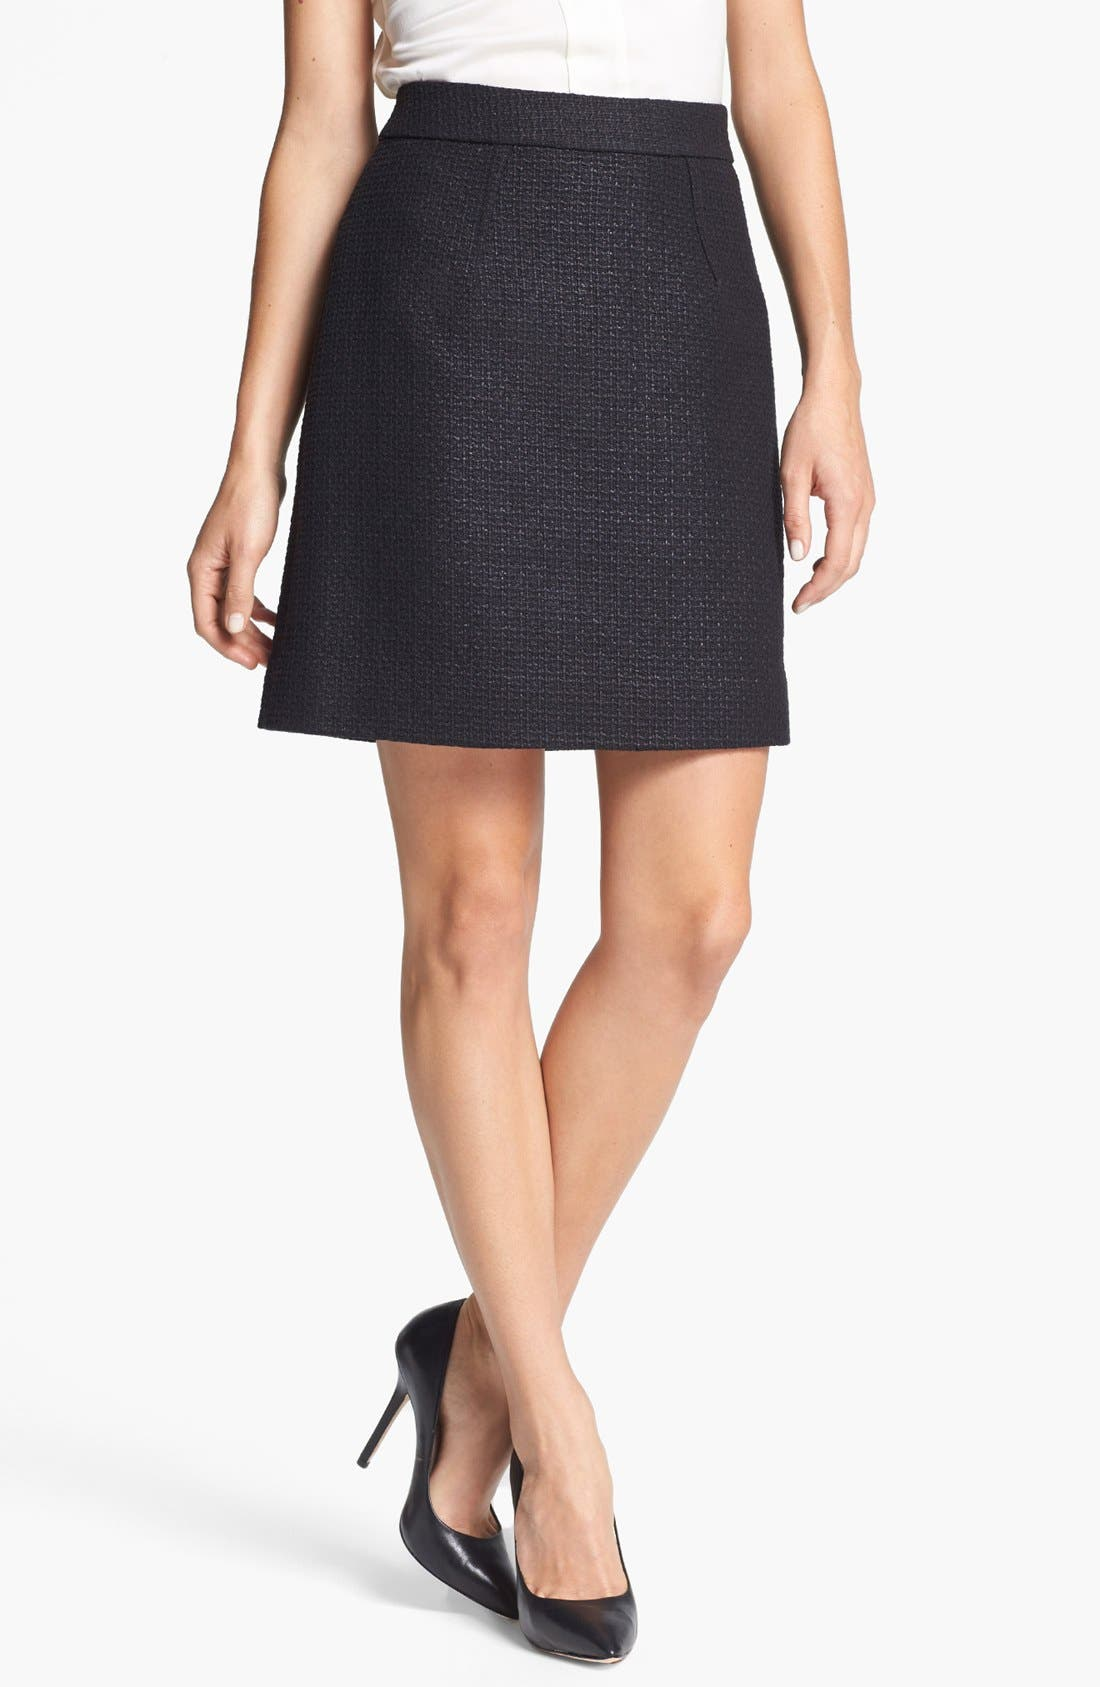 Alternate Image 1 Selected - kate spade new york 'caylene' woven skirt